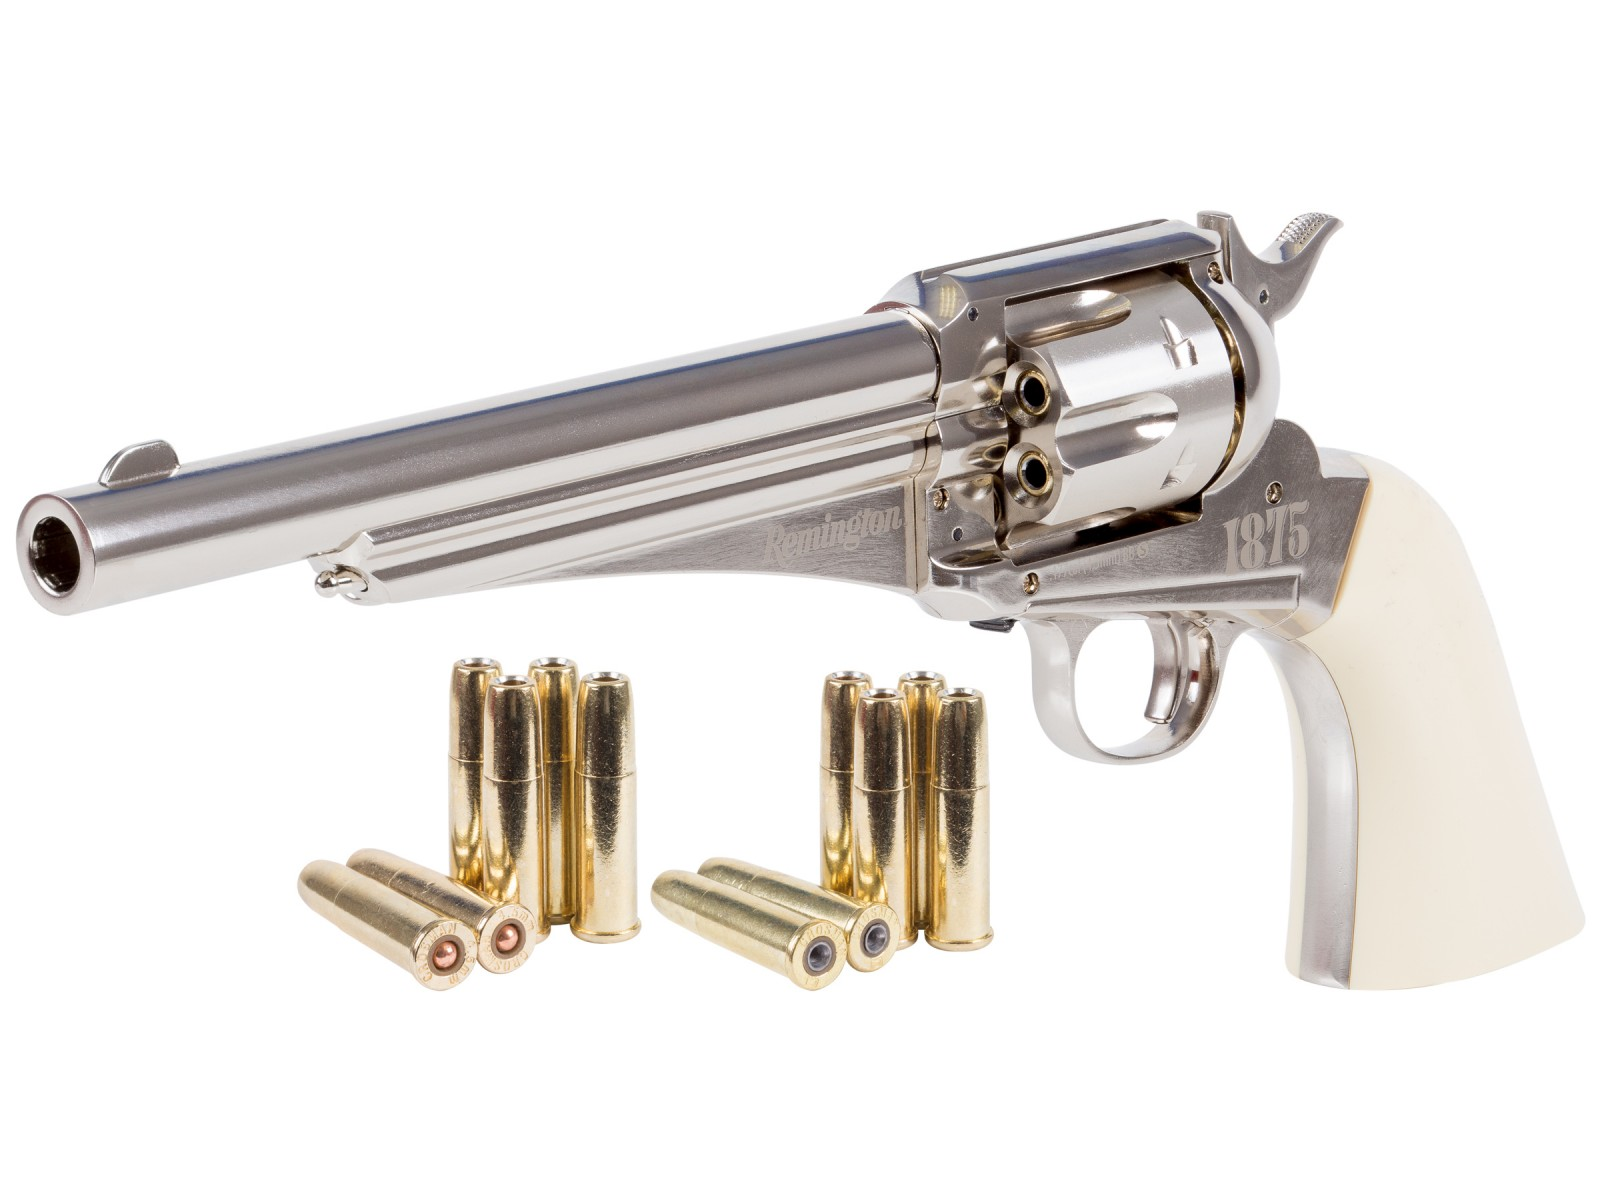 Remington 1875 CO2 Dual Ammo Replica Revolver 0.177 Image